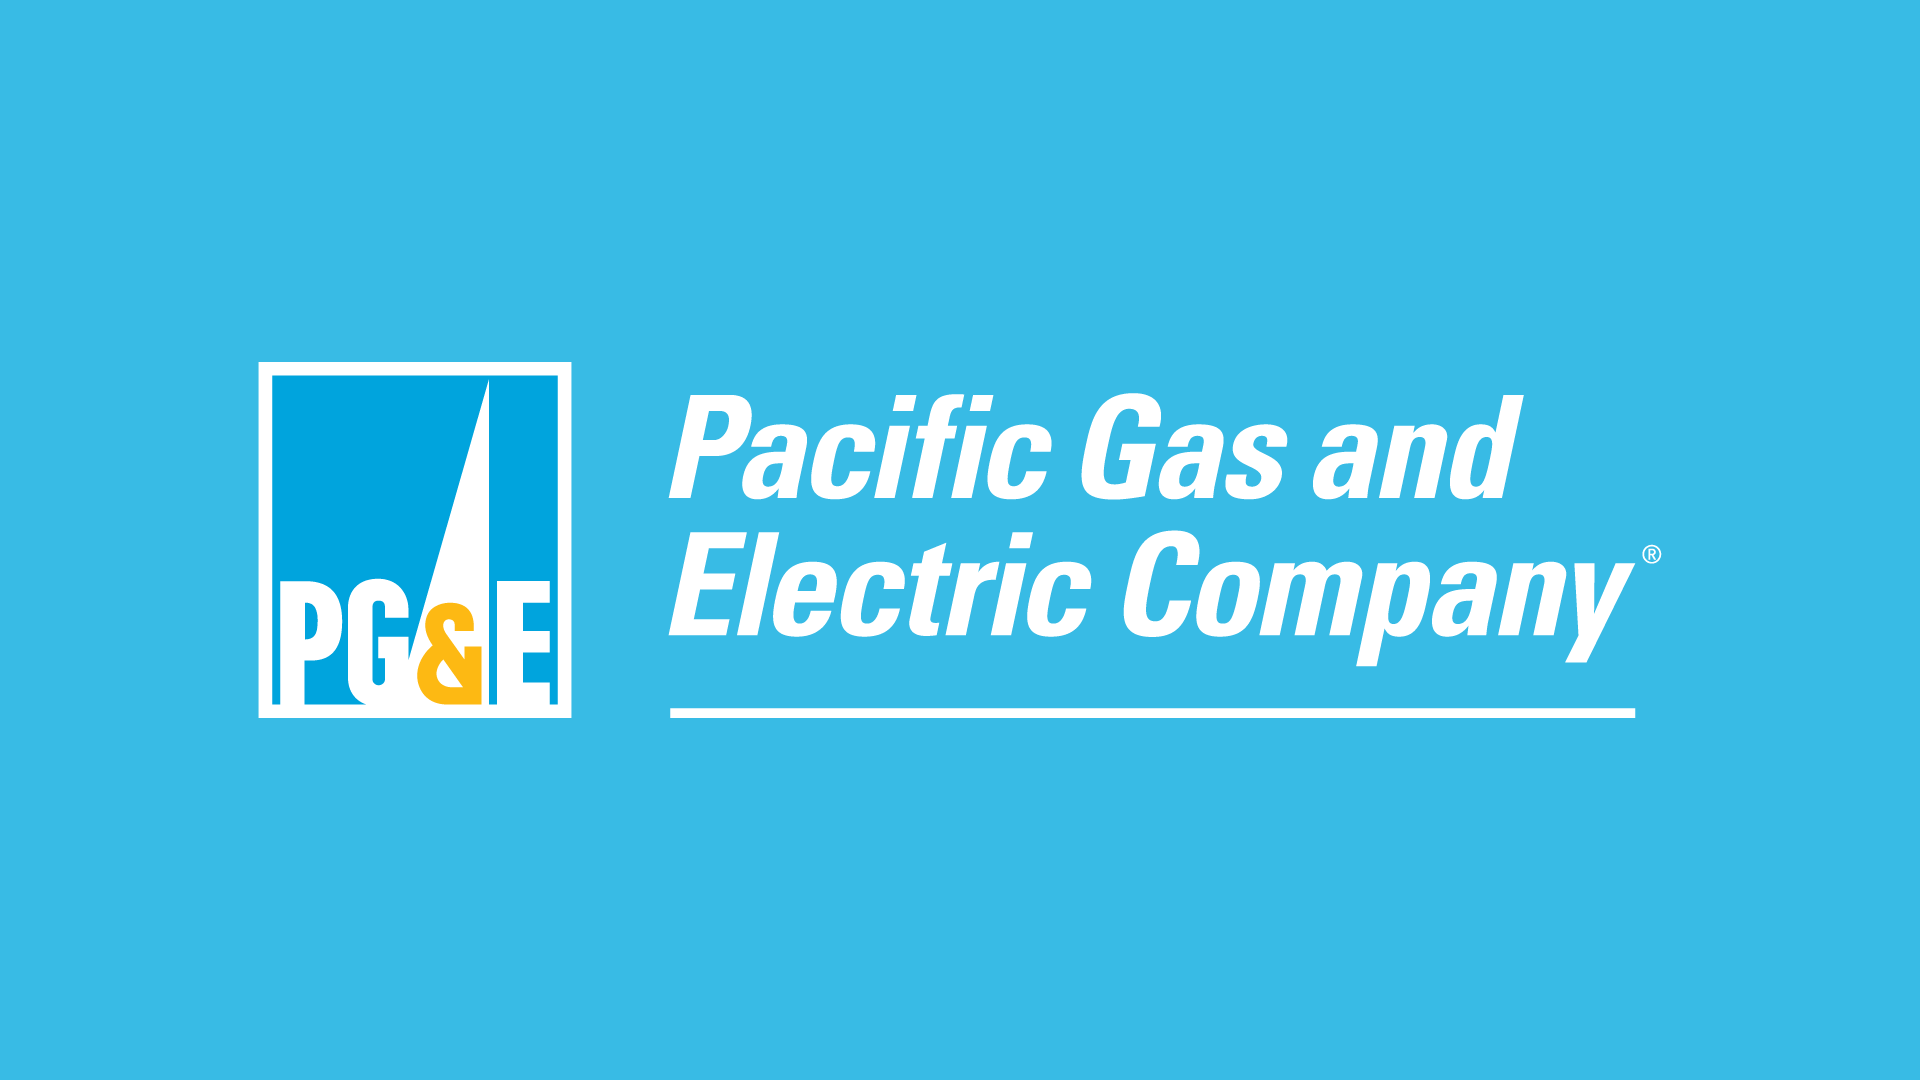 PG&E Logo - PG&E Woes Continue As Top Executive Retires - Warrior Trading News